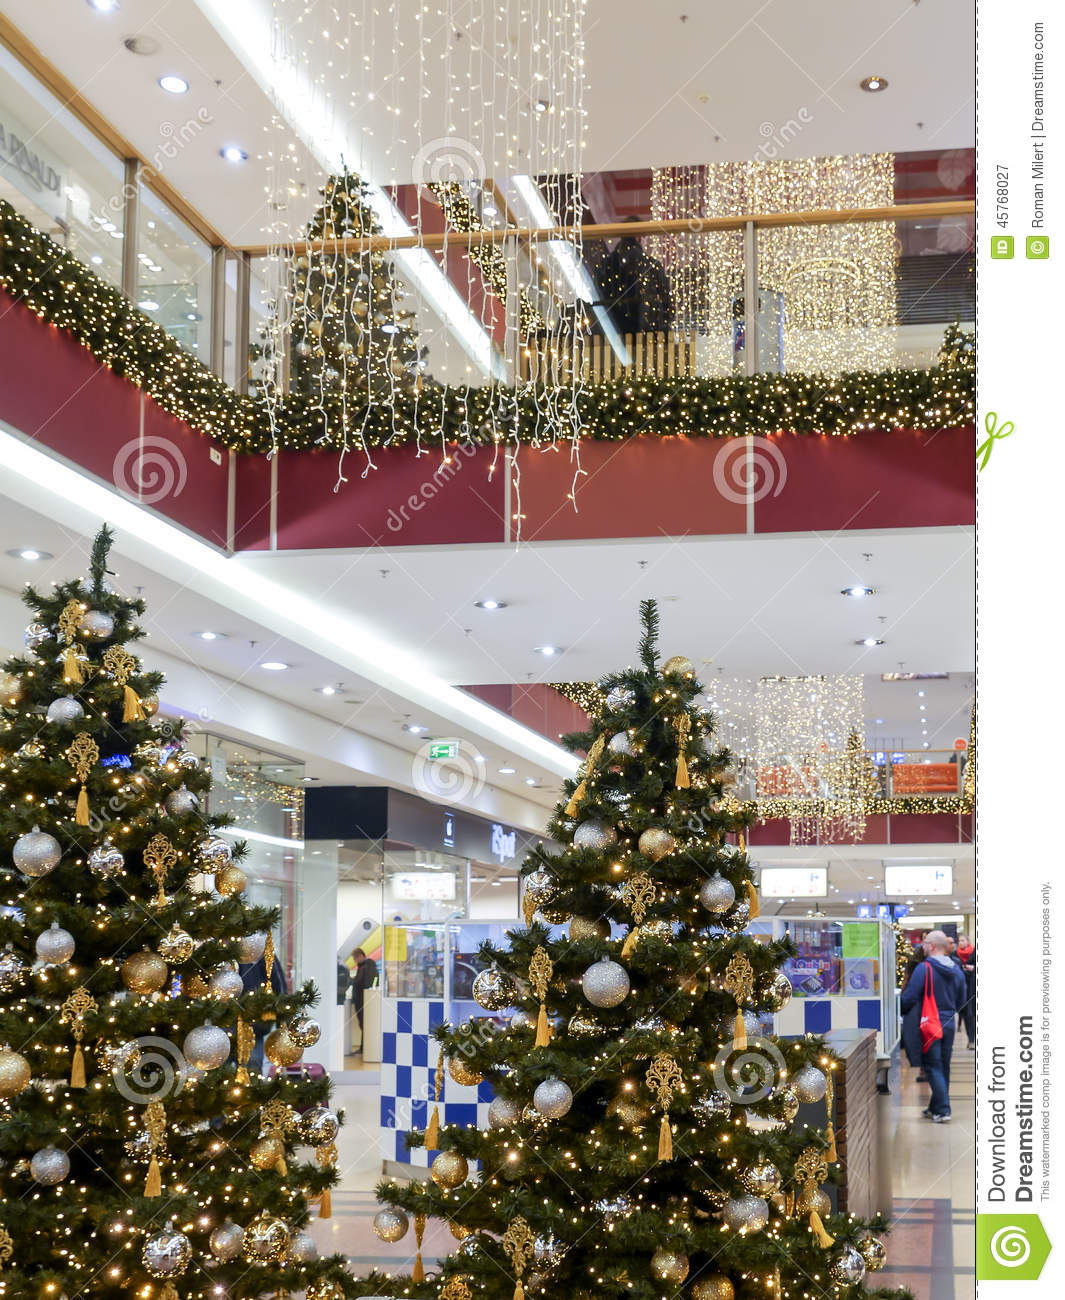 Christmas Decorations In Shopping Malls: Christmas Shopping Mall Editorial Photography. Image Of